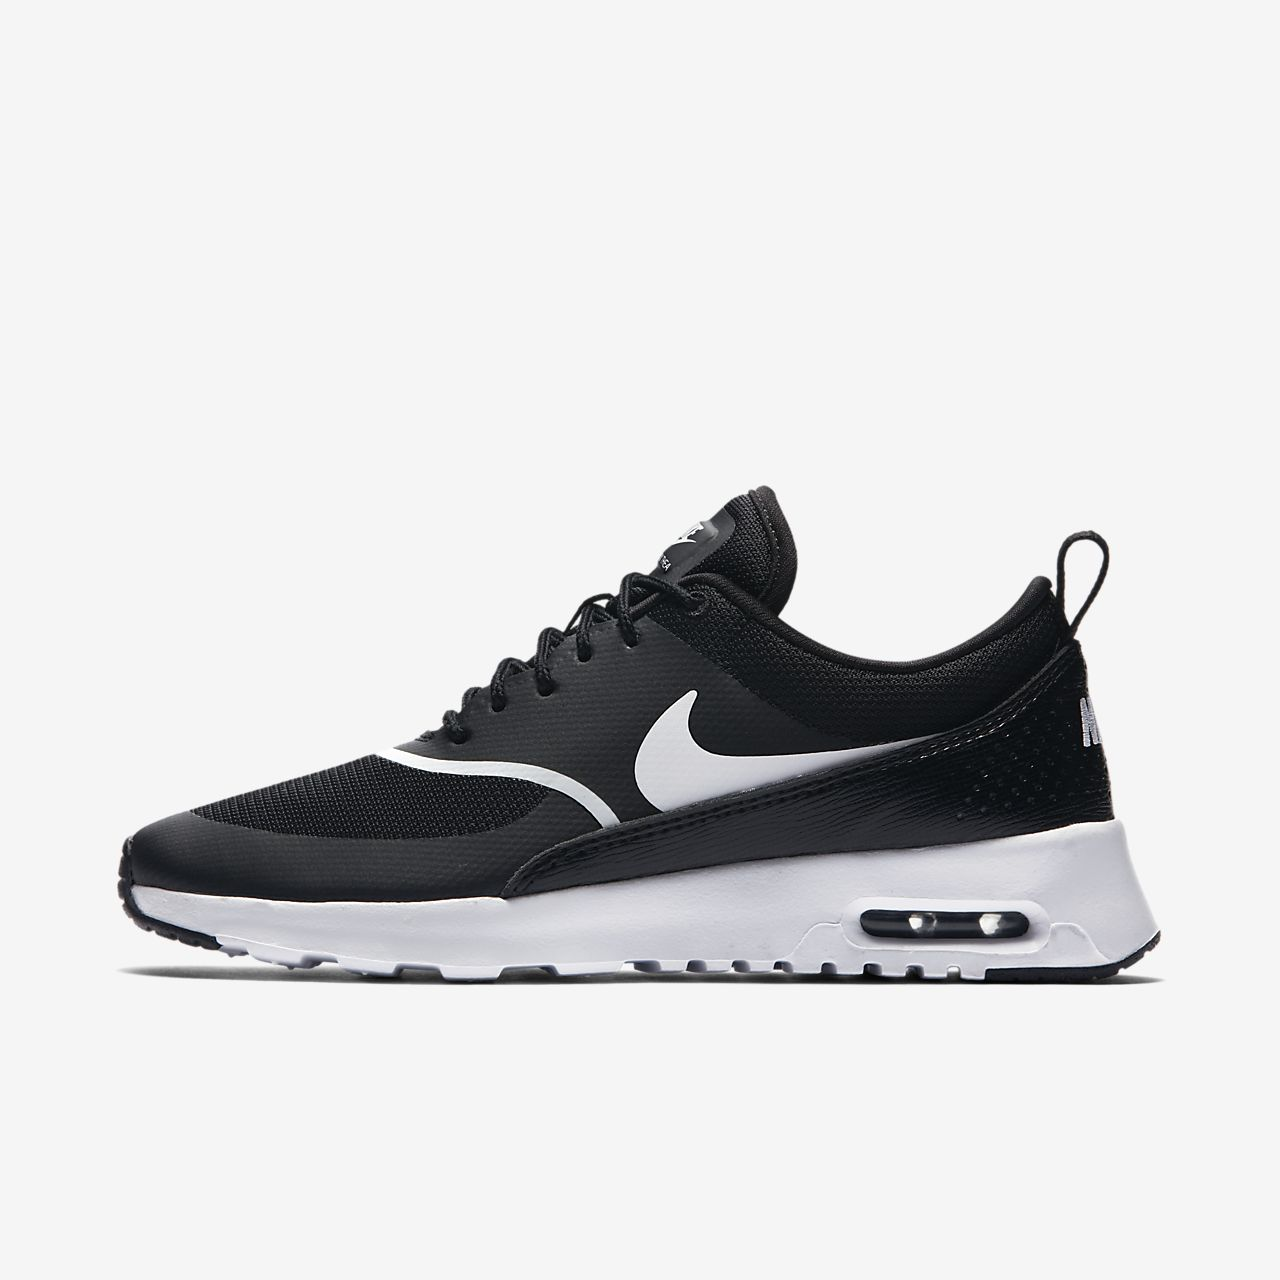 sports shoes b278b 0f59d ... Nike Air Max Thea Womens Shoe